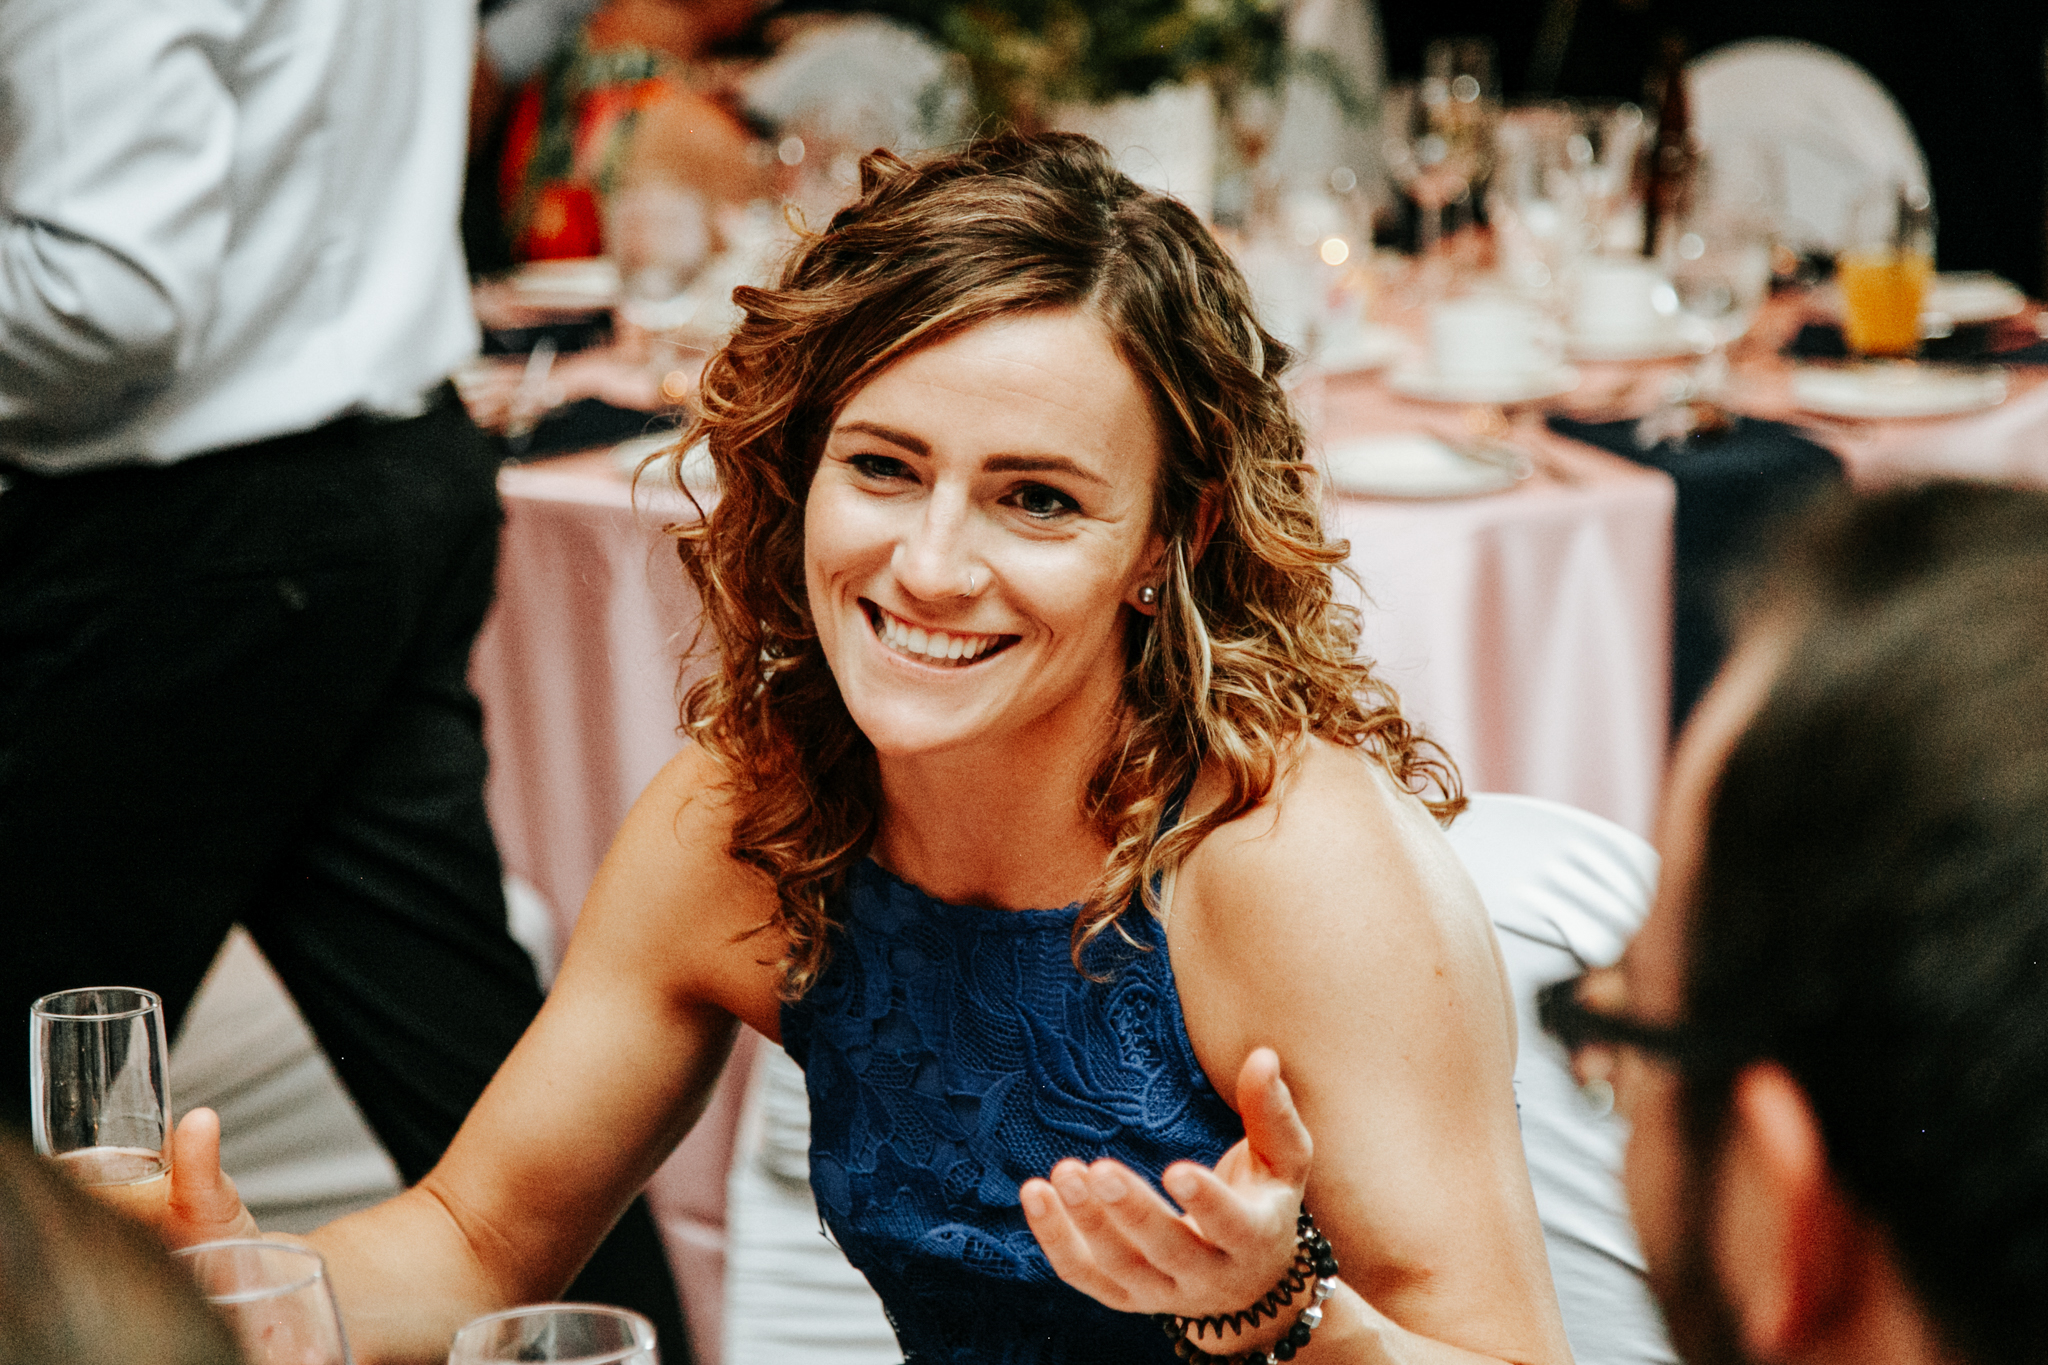 red-deer-wedding-photographer-love-and-be-loved-photography-emily-gab-photo-image-picture-207.jpg